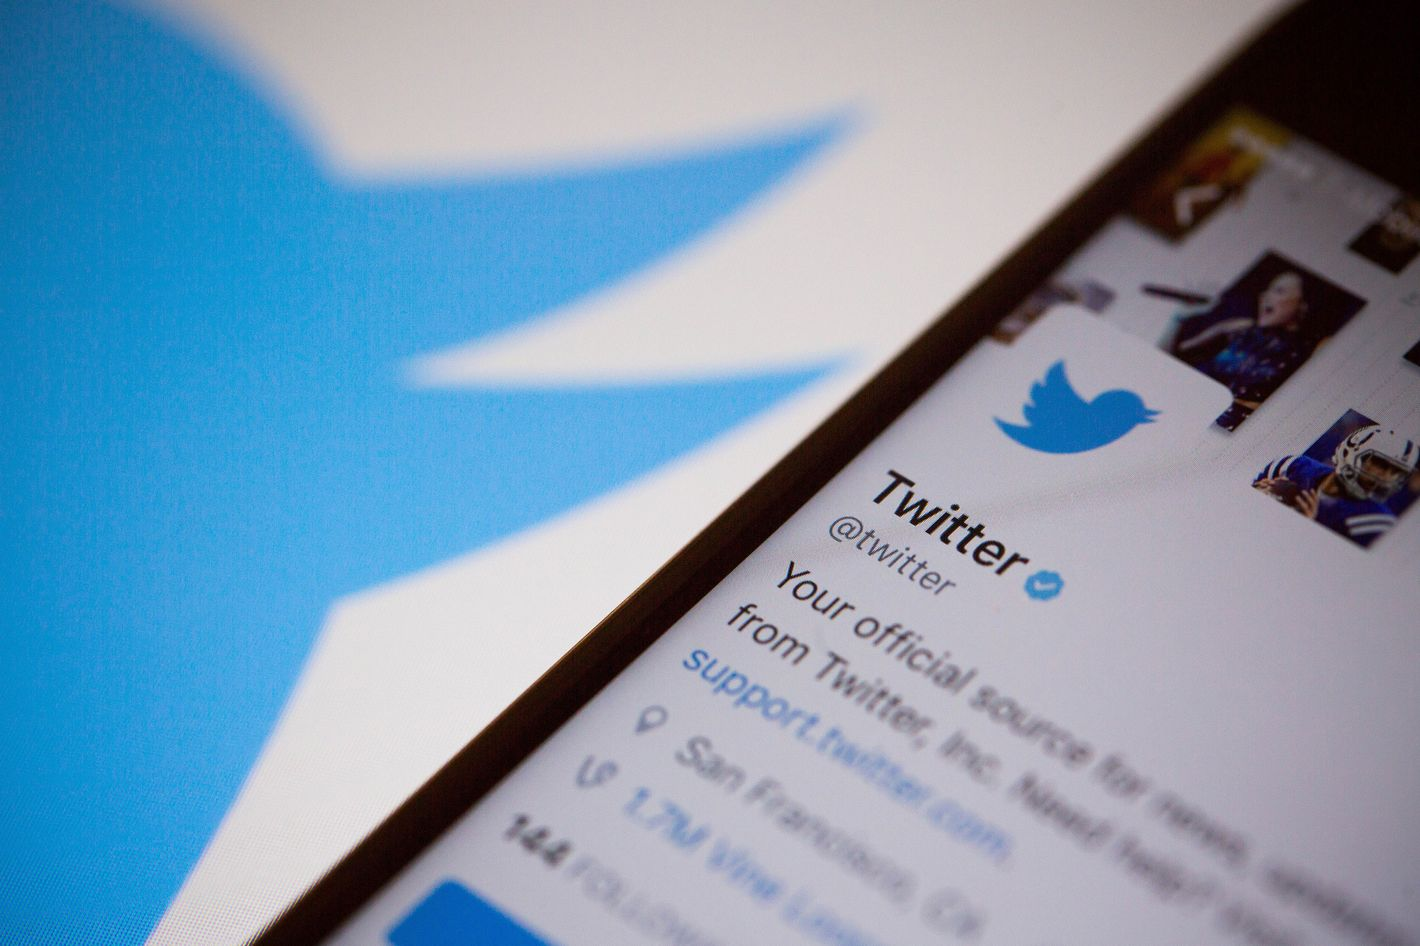 Twitter Unveils 'Quality Filter' to Help Combat Bullying